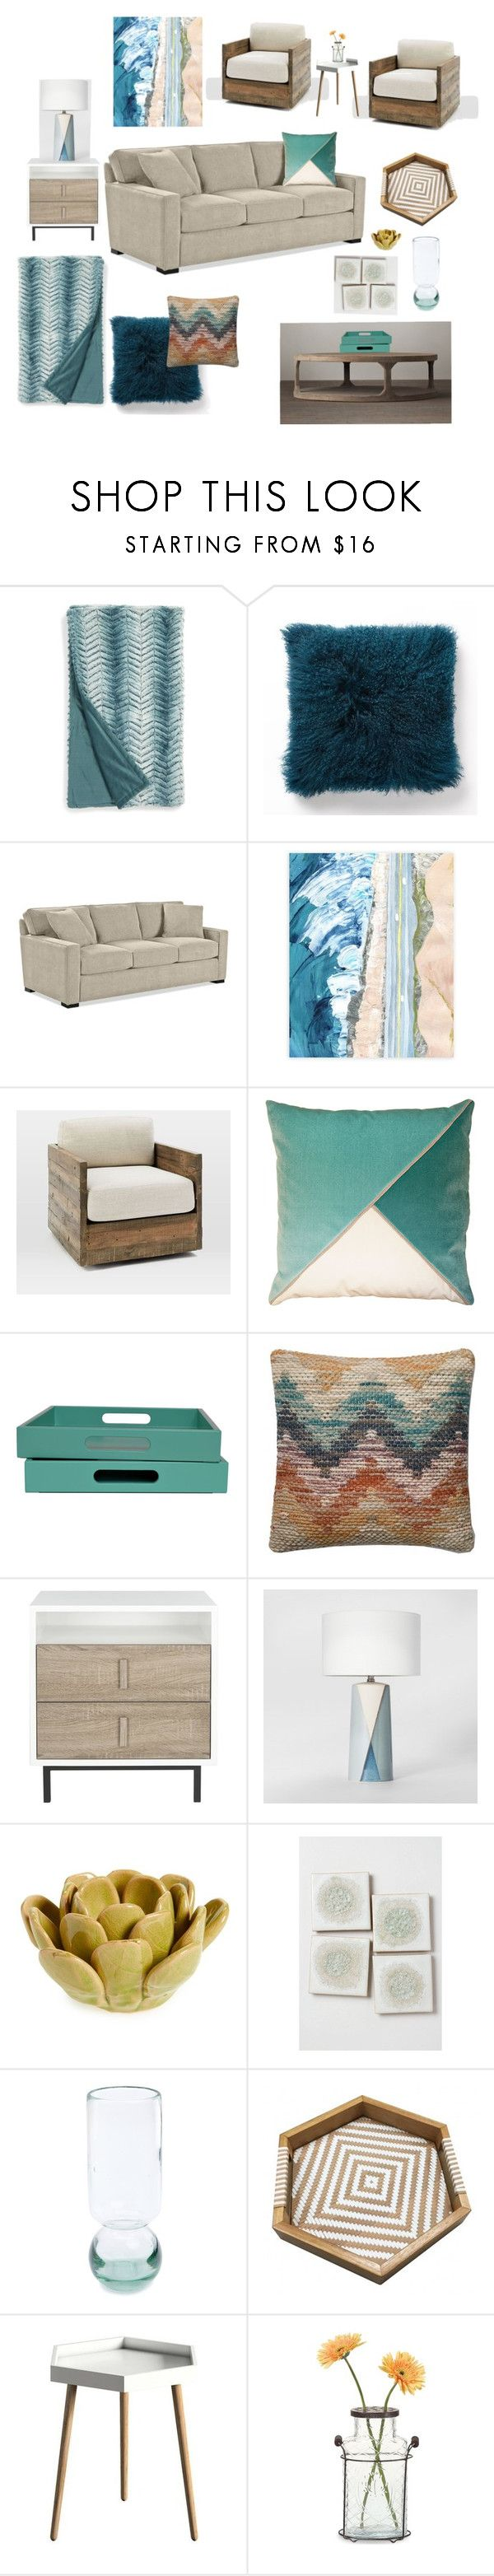 """""""Corte Madera - Updated Living Room"""" by noelkvis on Polyvore featuring interior, interiors, interior design, home, home decor, interior decorating, Nordstrom, West Elm, Project 62 and HomArt"""